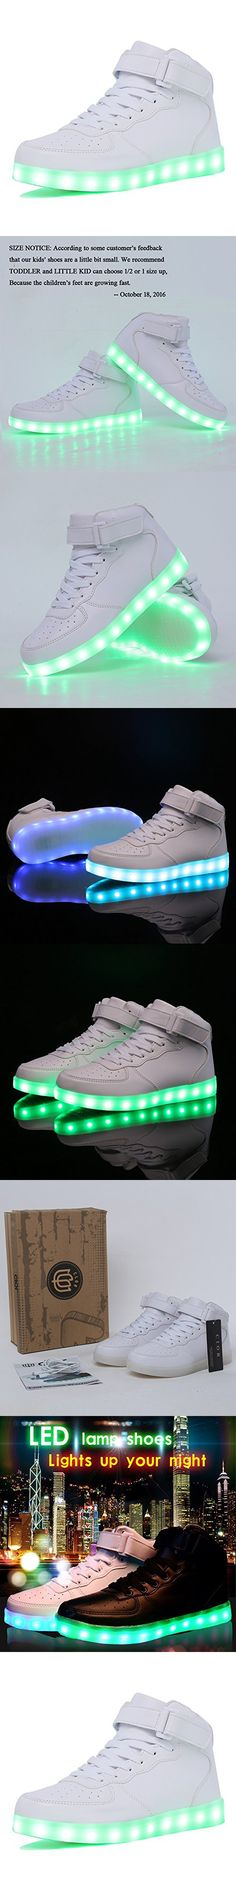 CIOR Kids Boy and Girl's High Top Led Sneakers Light Up Flashing Shoes(Toddler/Little Kid/Big Kid),101C,02,36